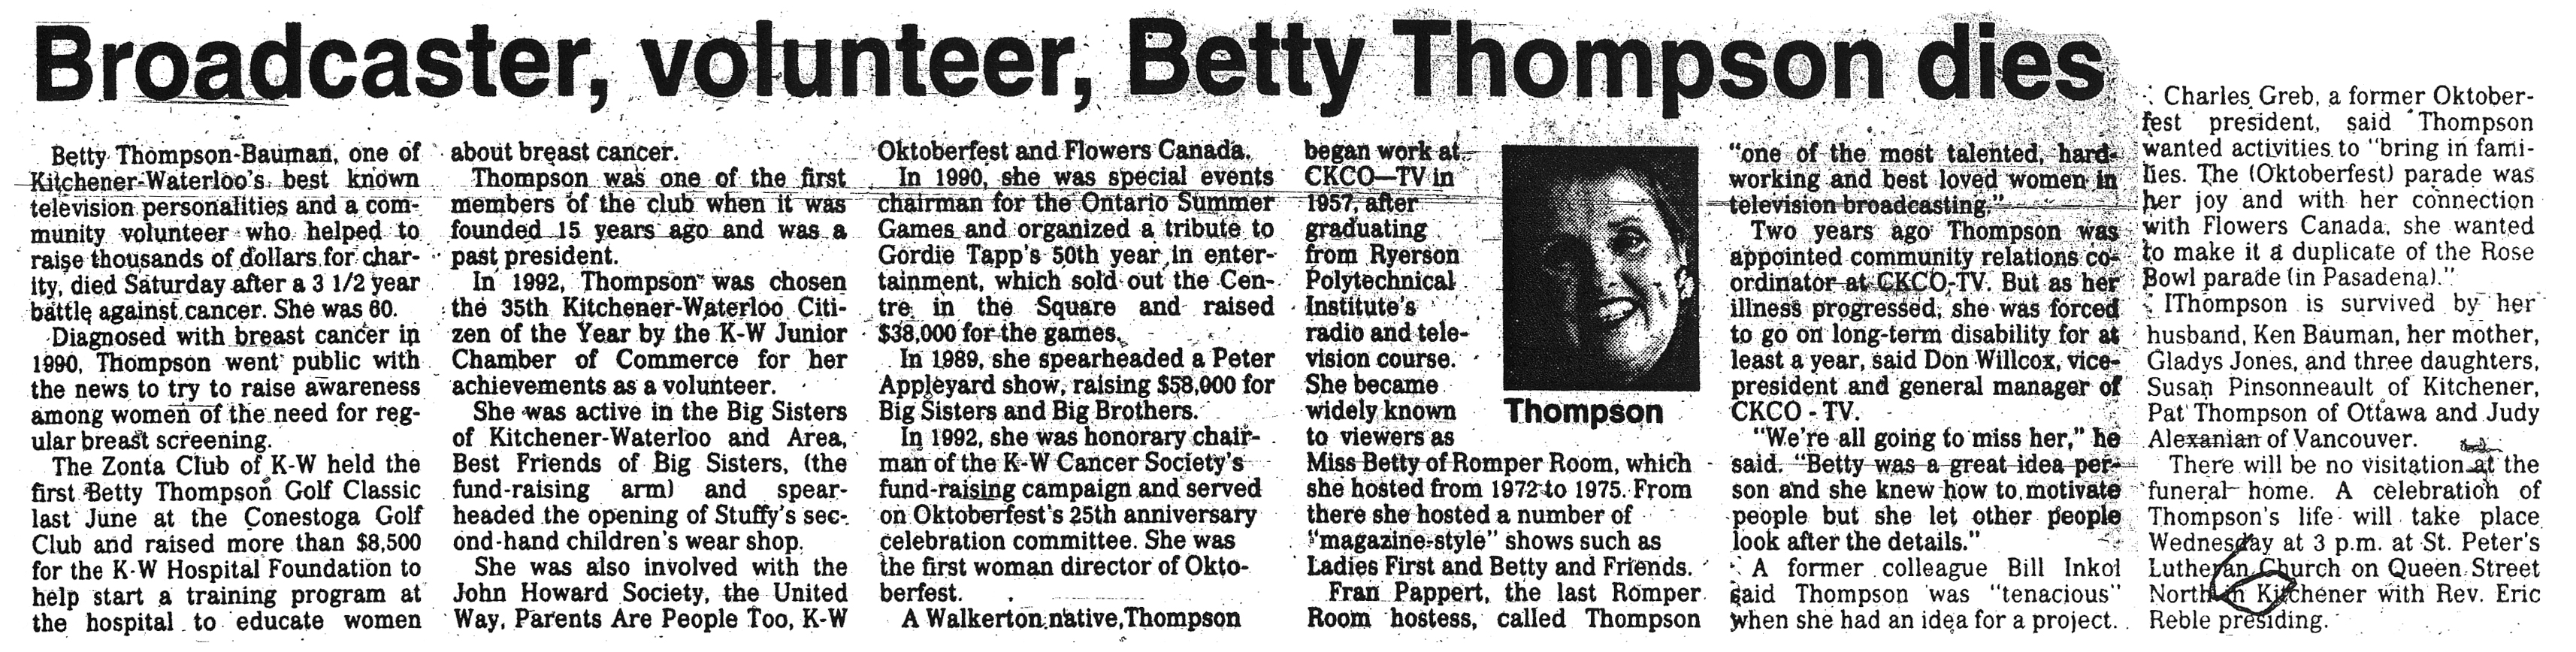 Thompson, Betty - April 11, 1994 - Story